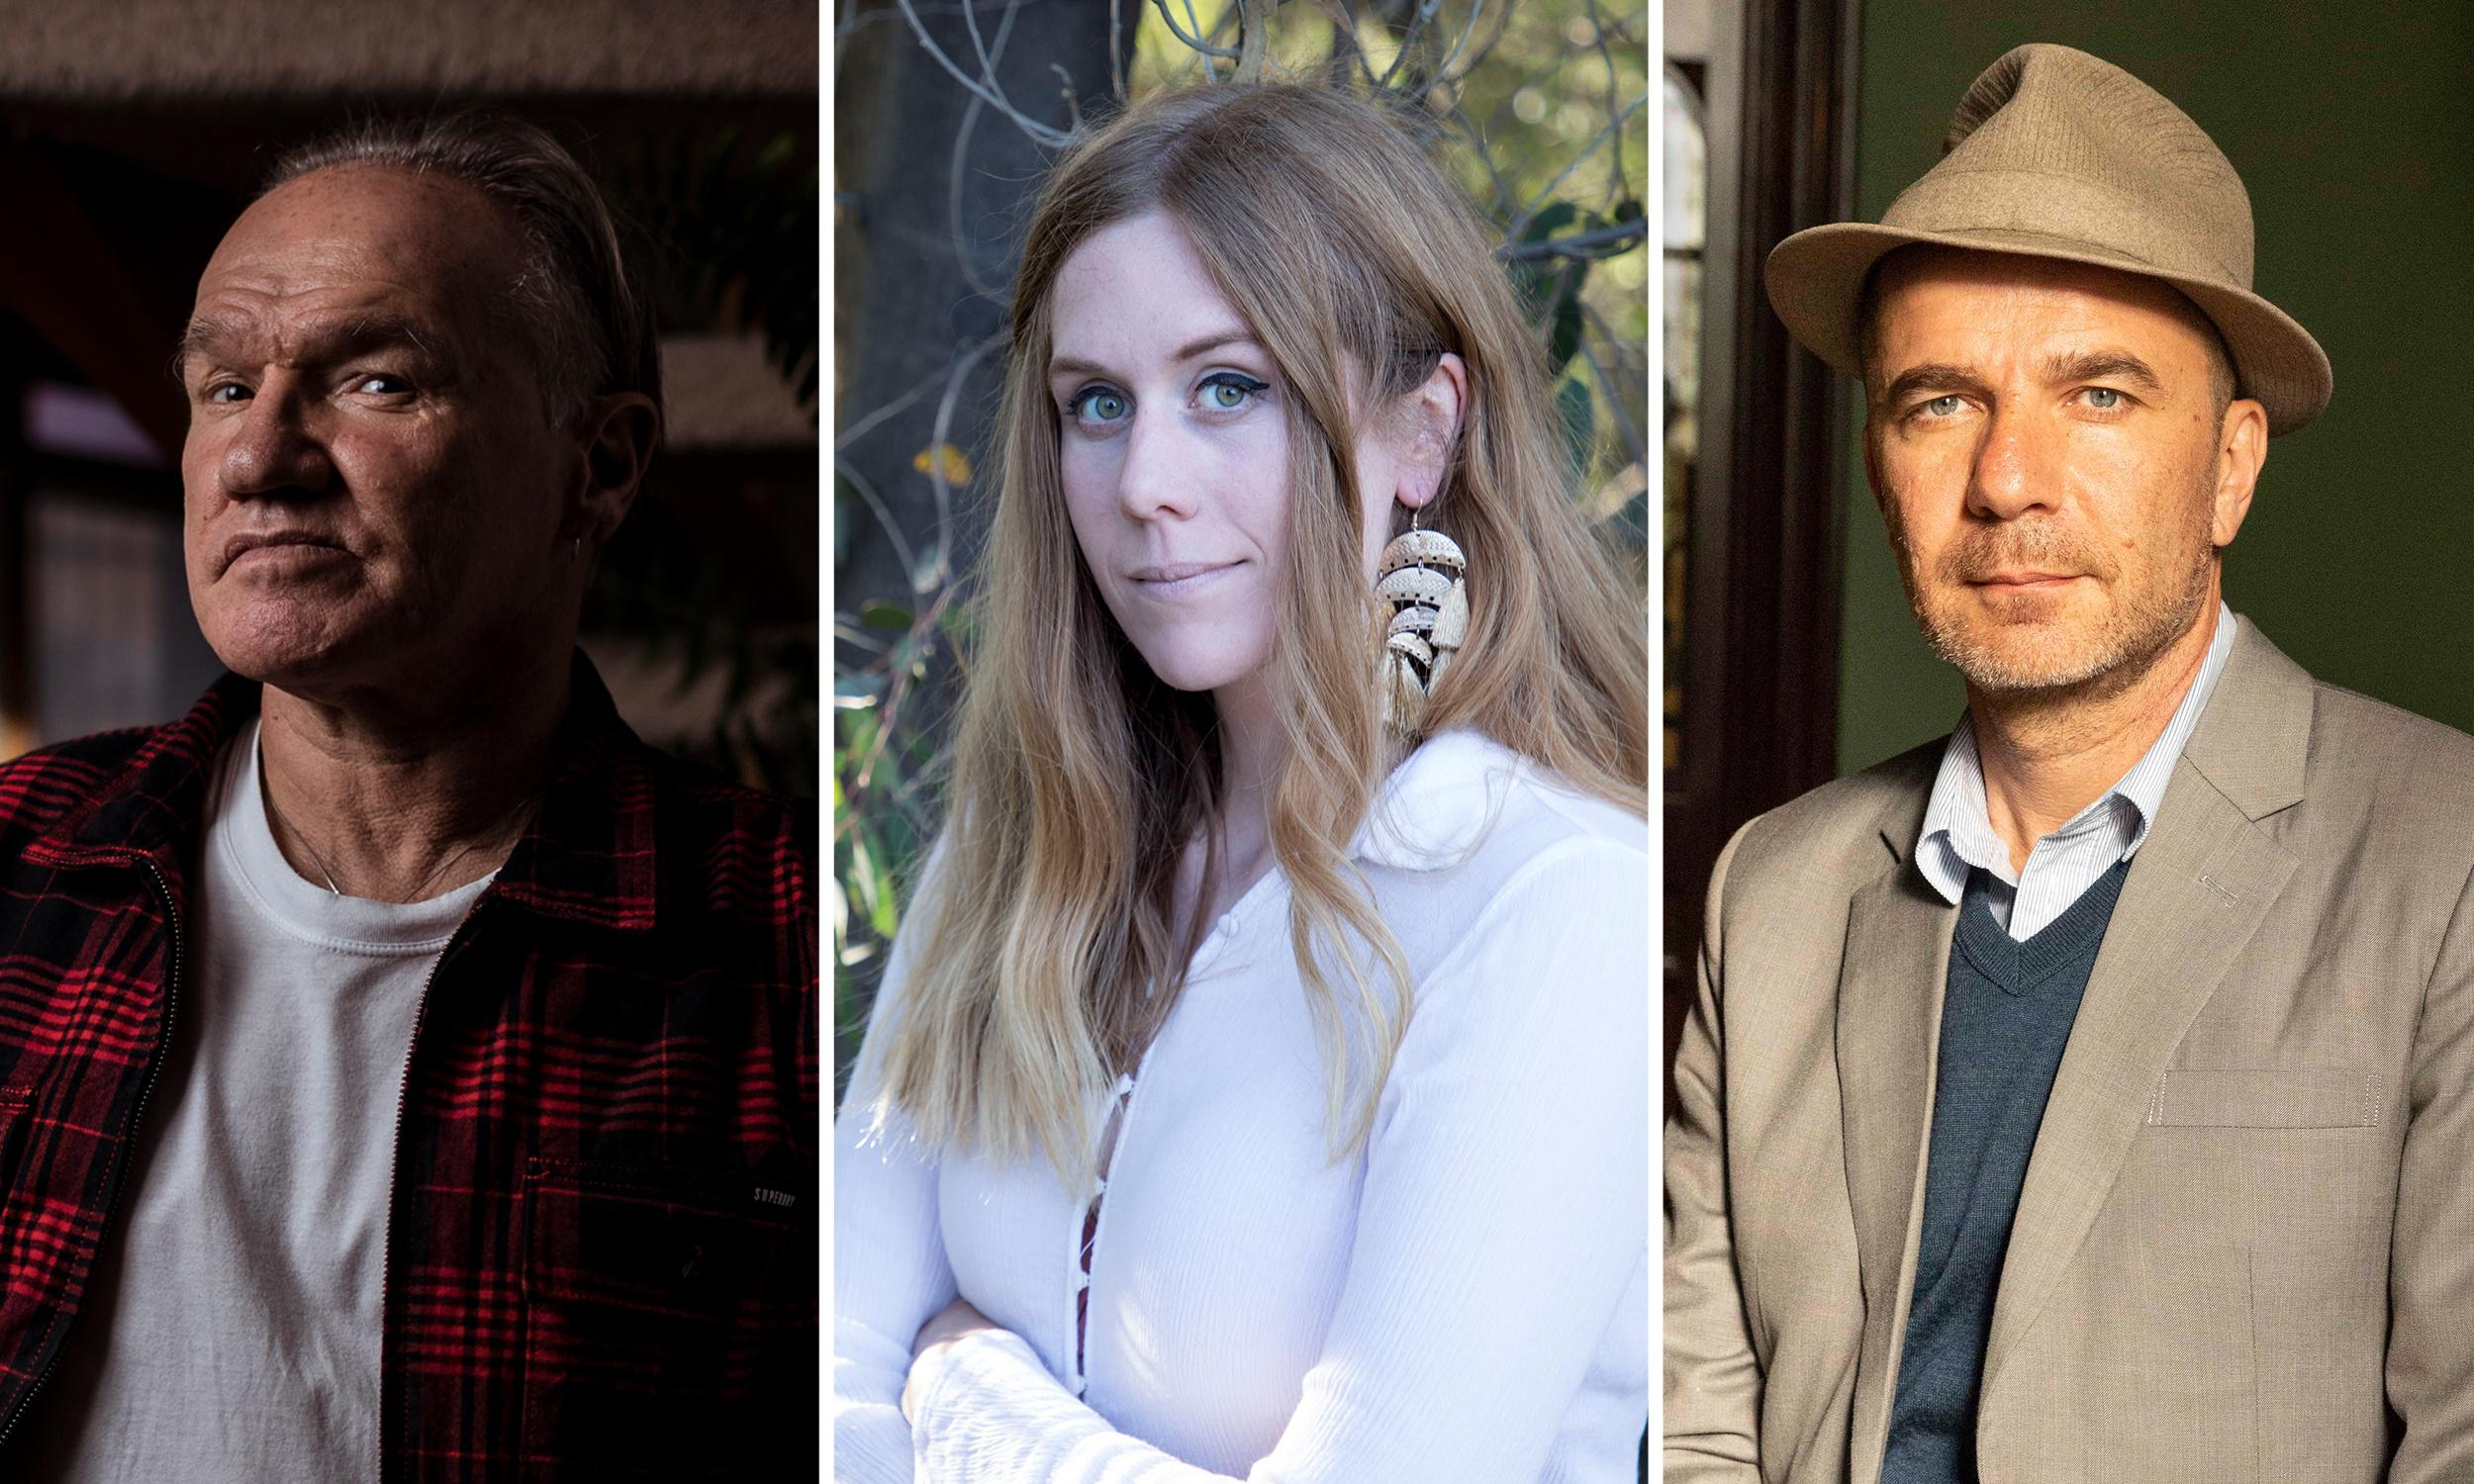 Matthew Evans, Niki Savva and Tony Birch on their new books and what they're reading in July